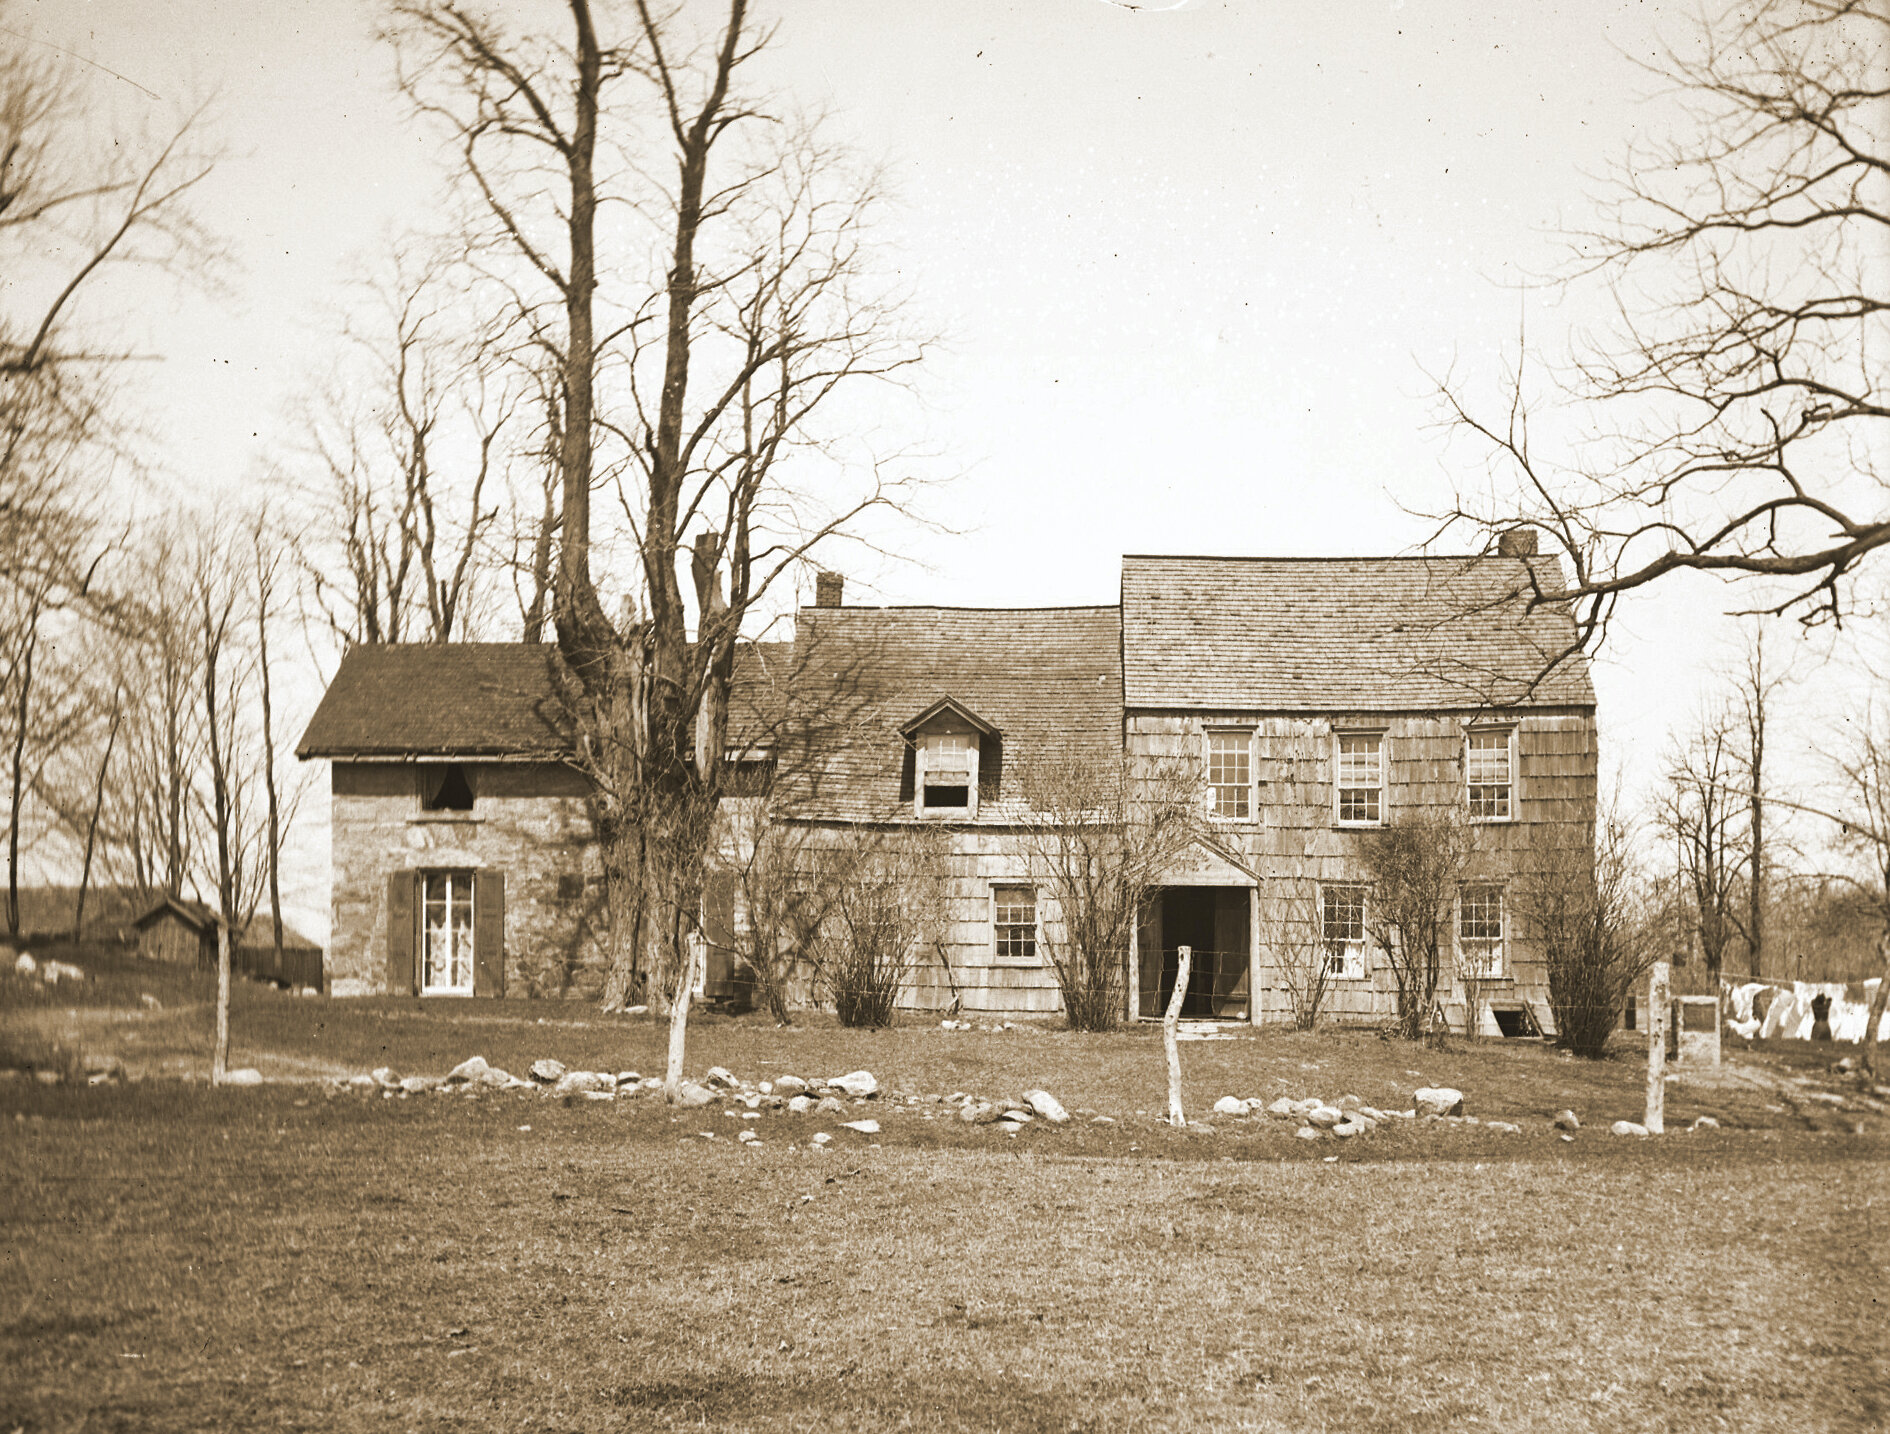 Odell House Exterior (Exact Date Unknown)